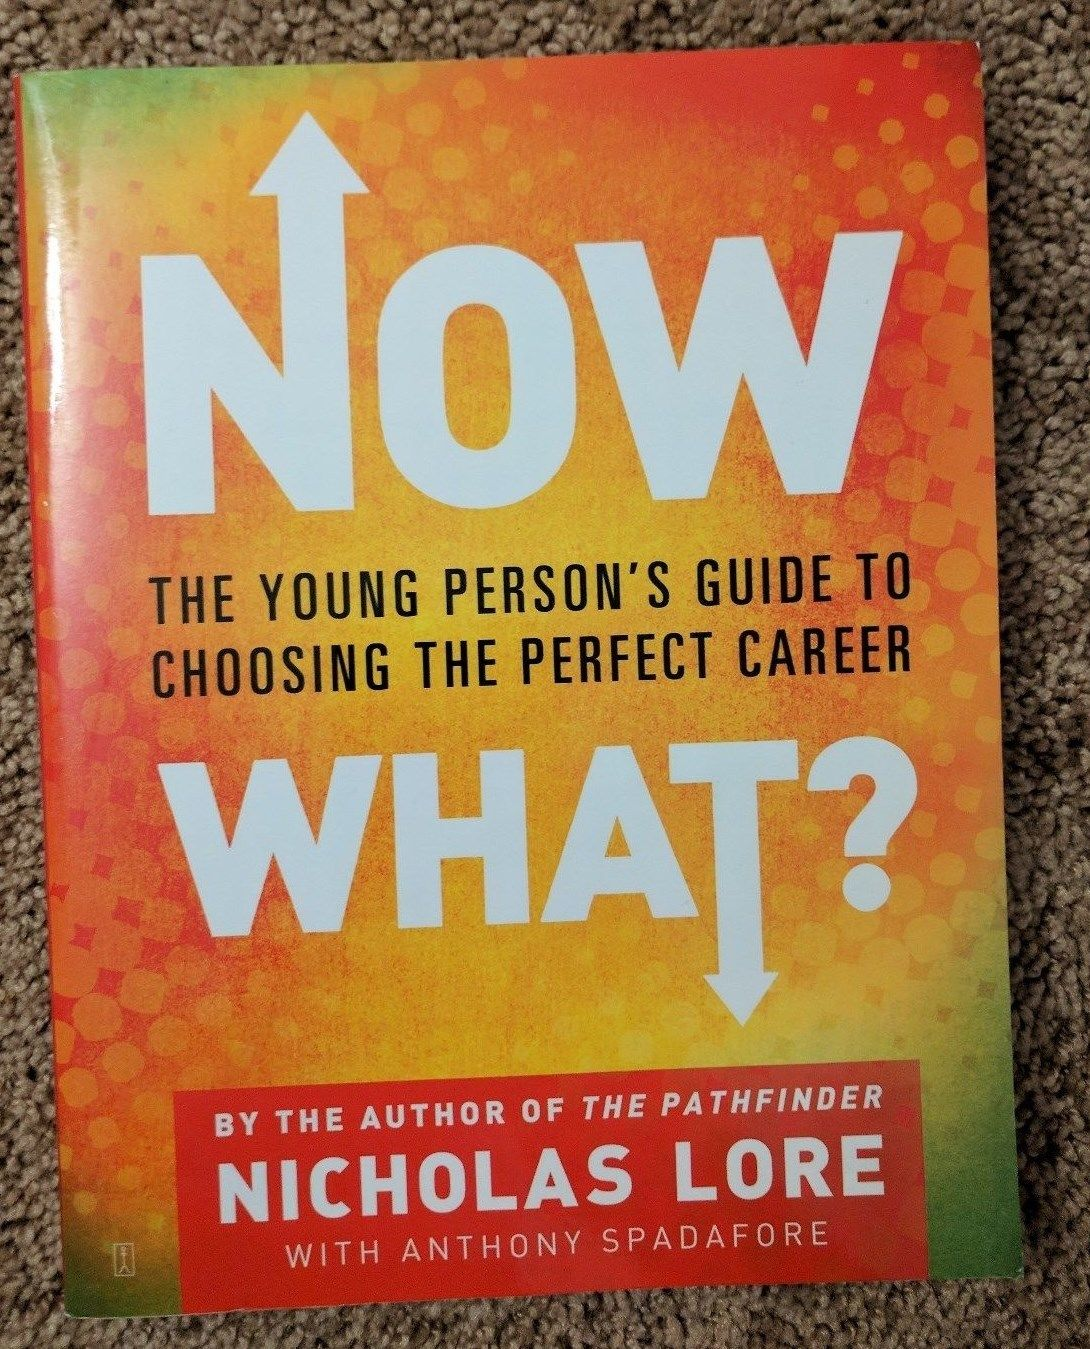 Now What The Young Person's Guide to Choosing the Perfect Career (Nicholas Lore)